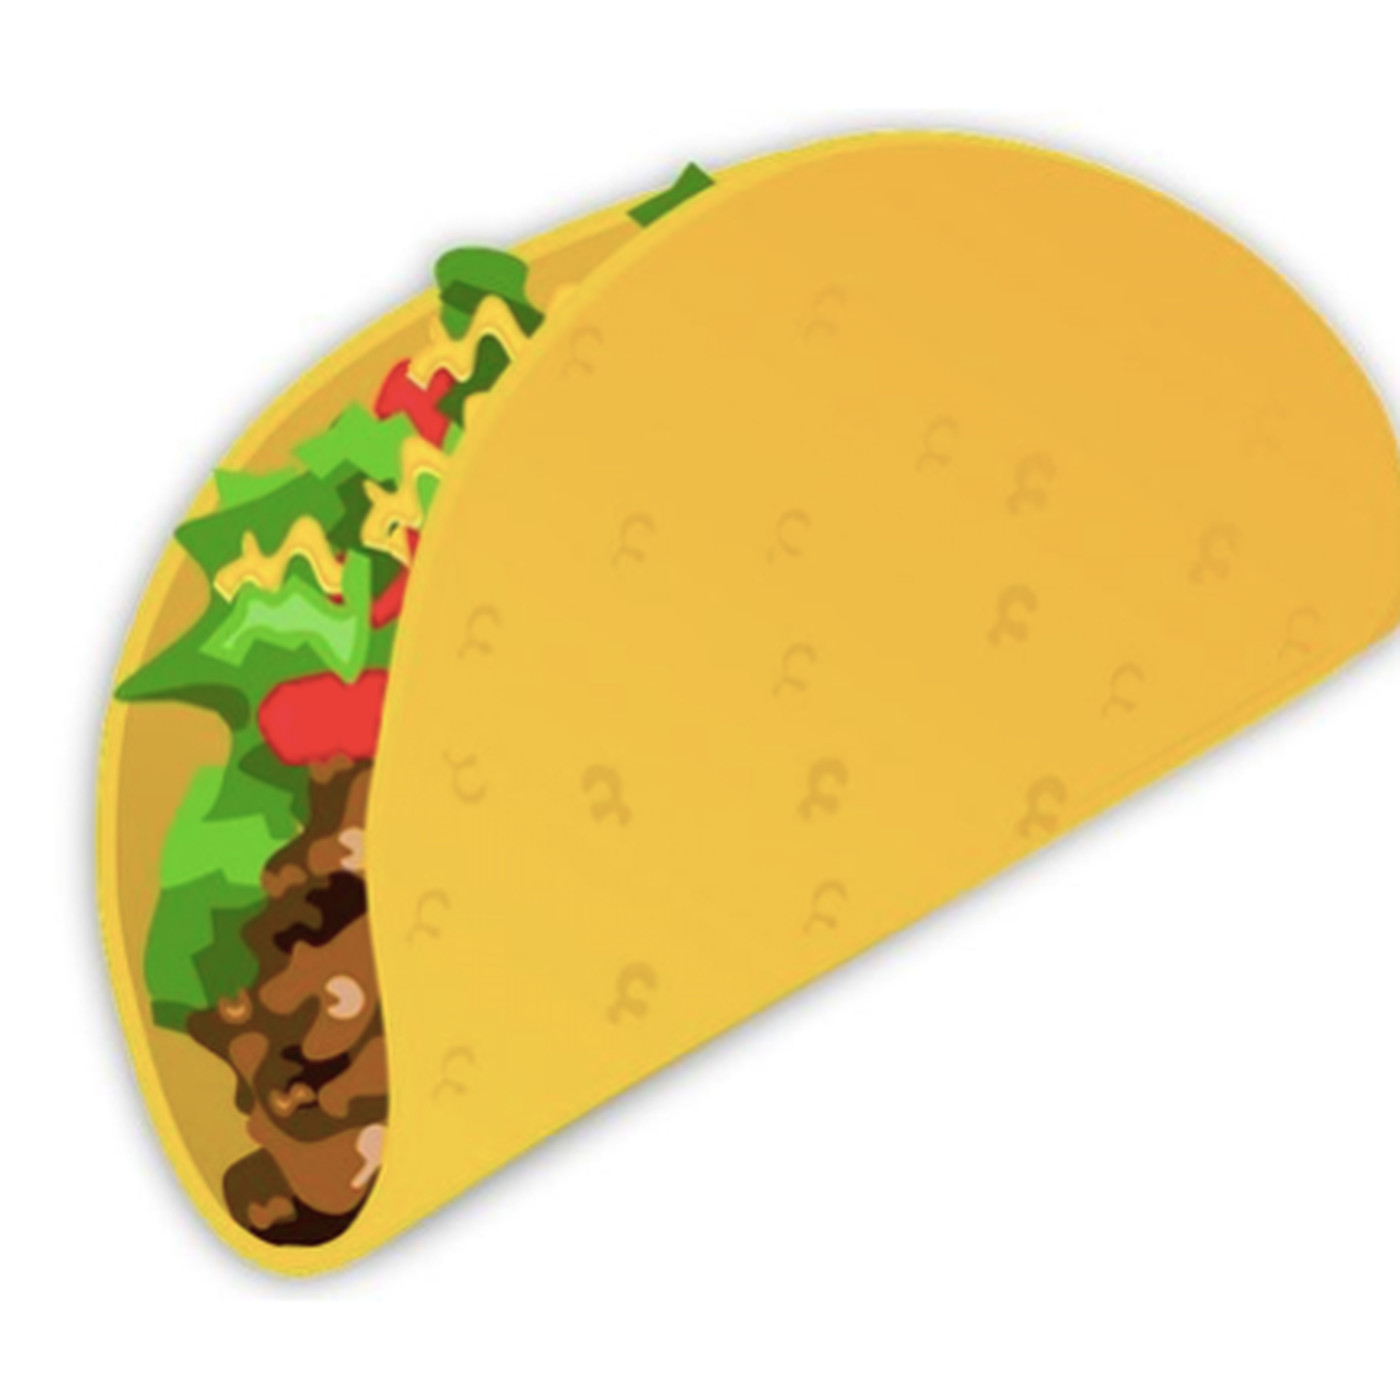 The Taco Emoji Will Finally Come to iPhones With iOS 9 1 - Eater